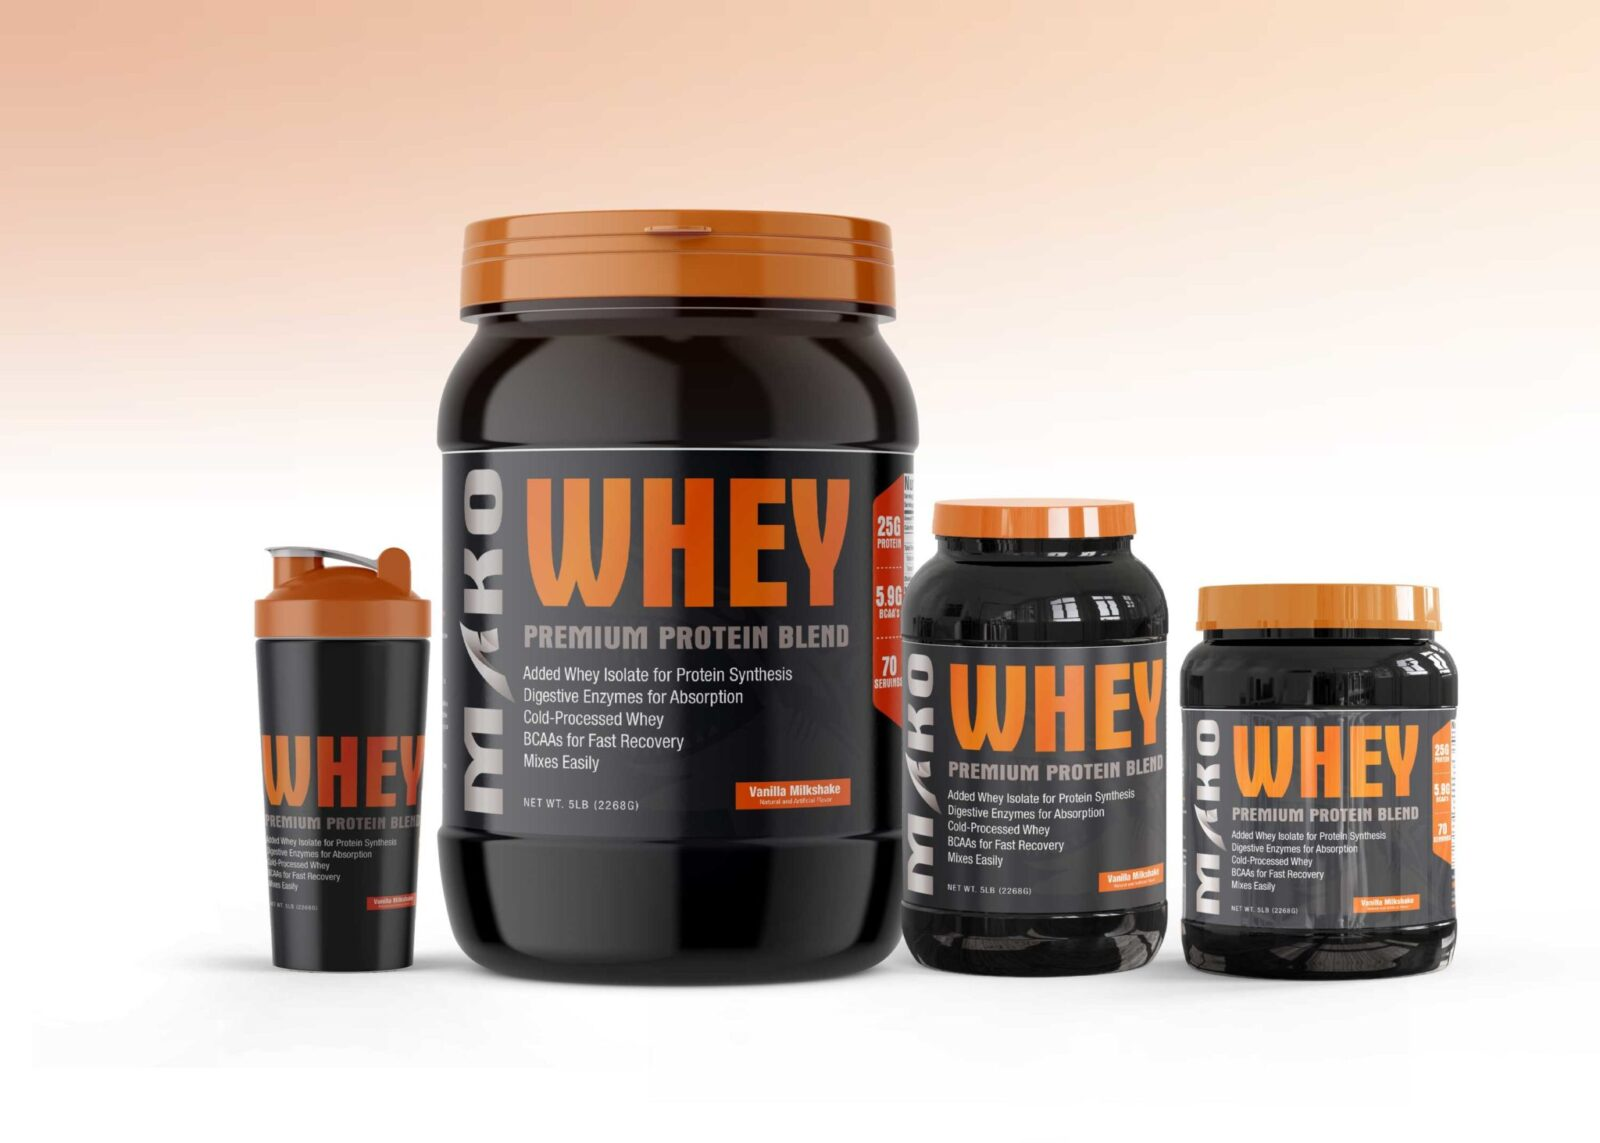 Whey Dietary Supplement Mockup